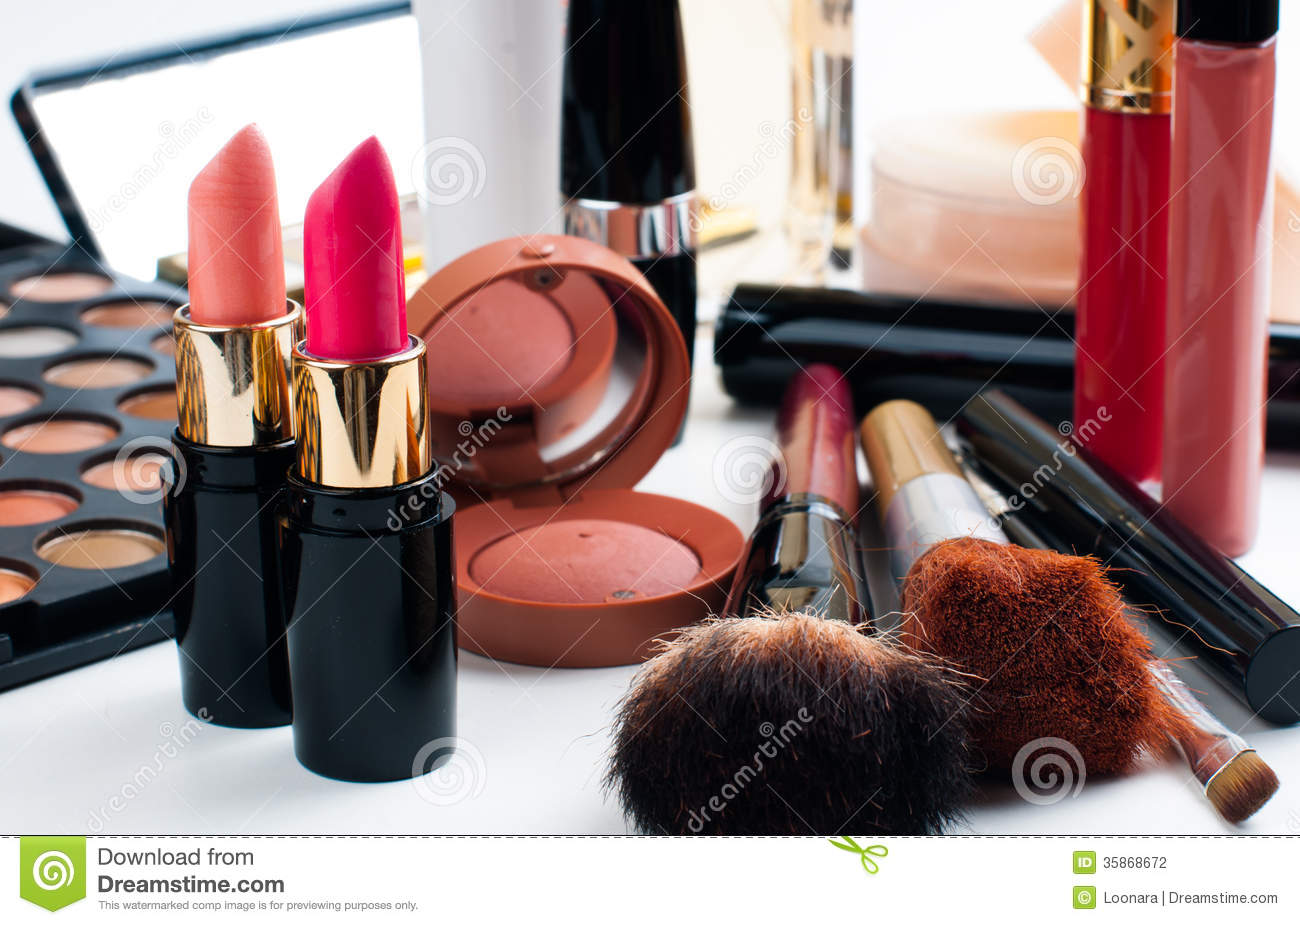 Set of makeup